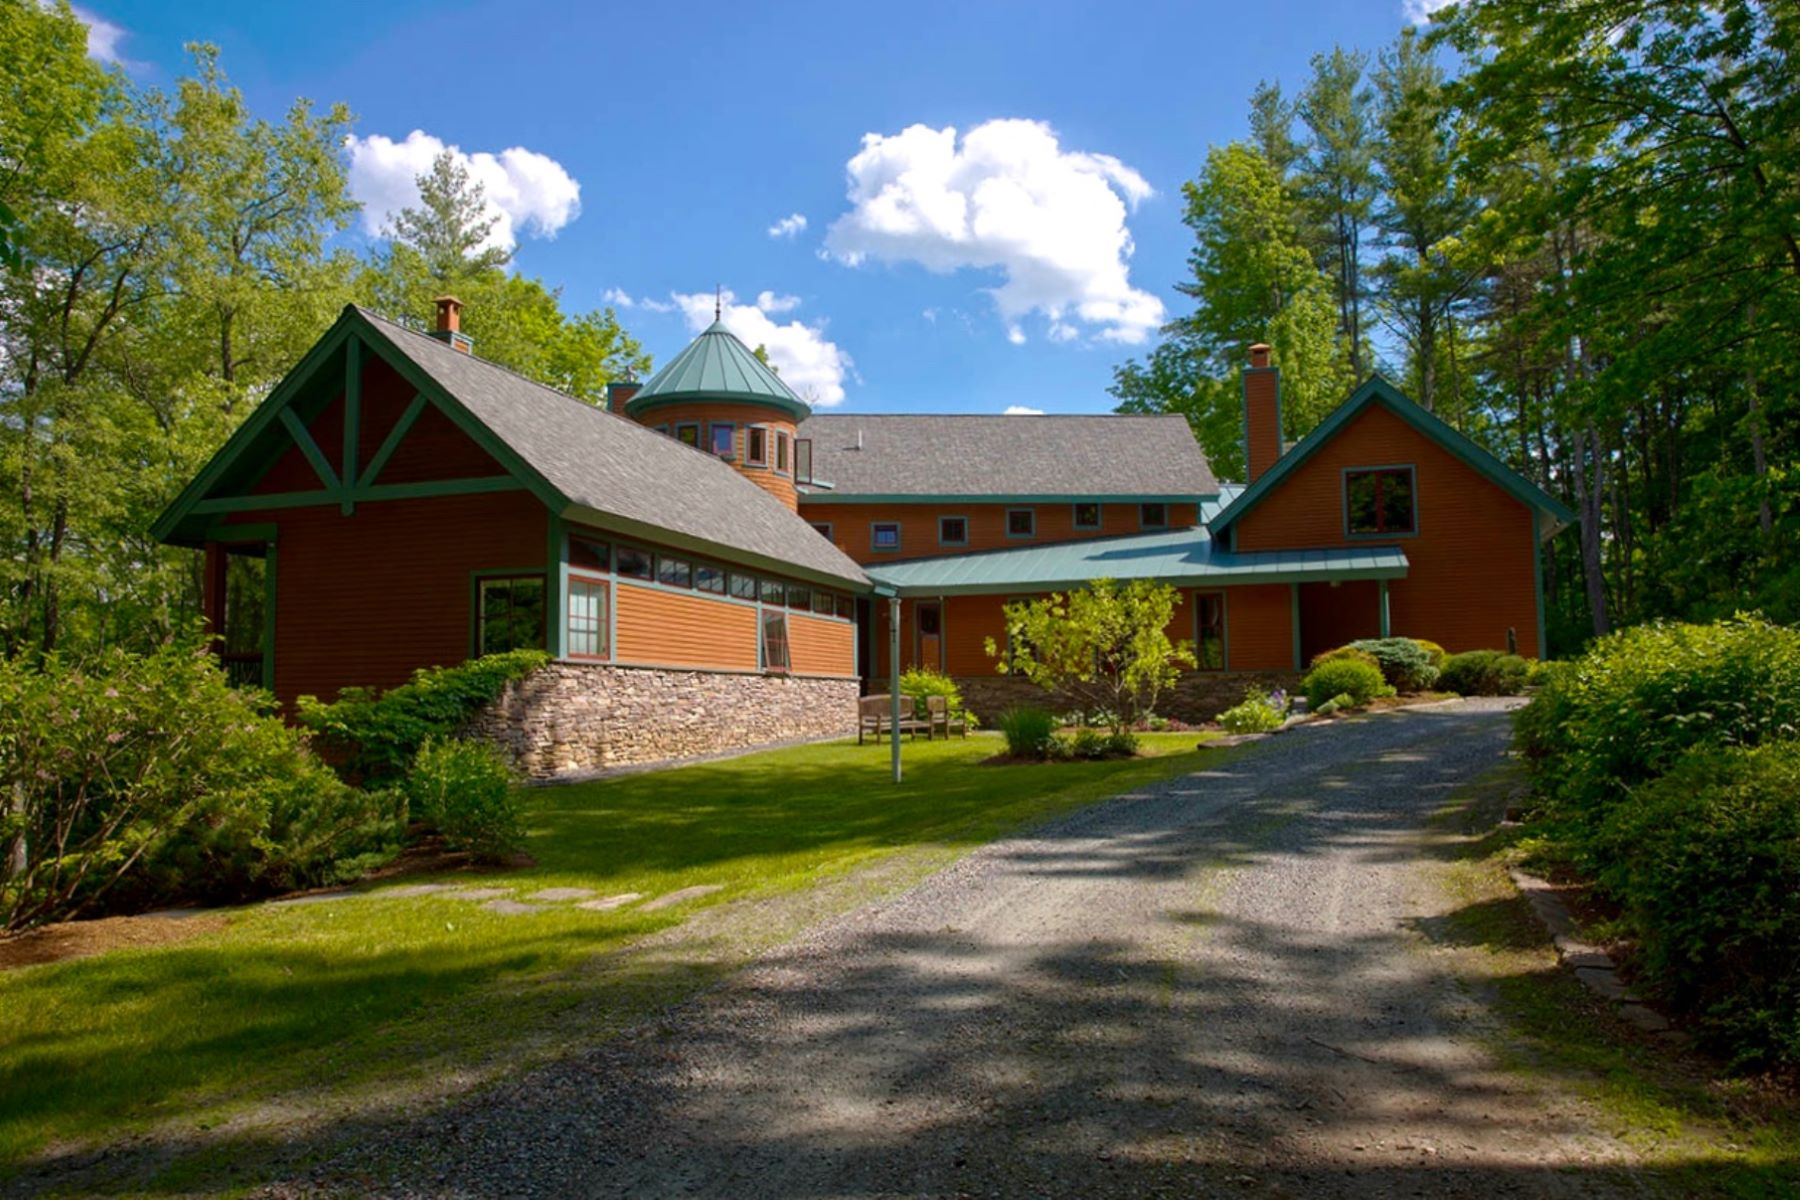 Single Family Home for Sale at 739 Westerdale Road, Woodstock 739 Westerdale Rd Woodstock, Vermont 05091 United States